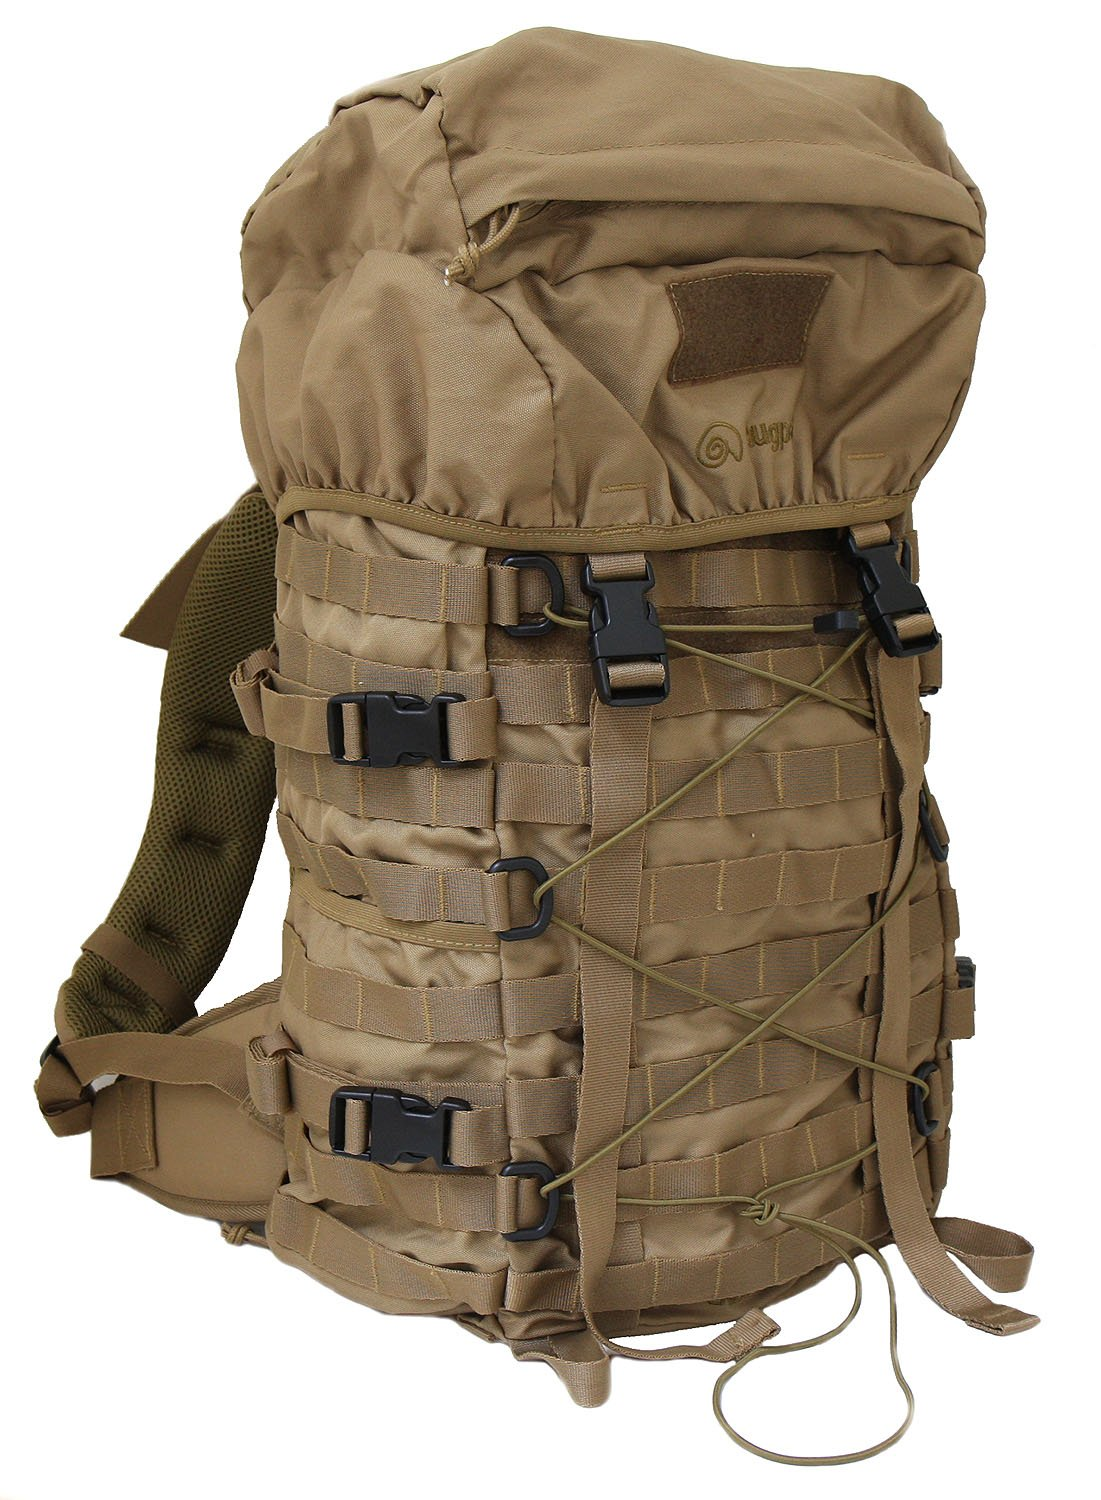 Snugpak - Endurance 40 Backpack Coyote Tan 92186